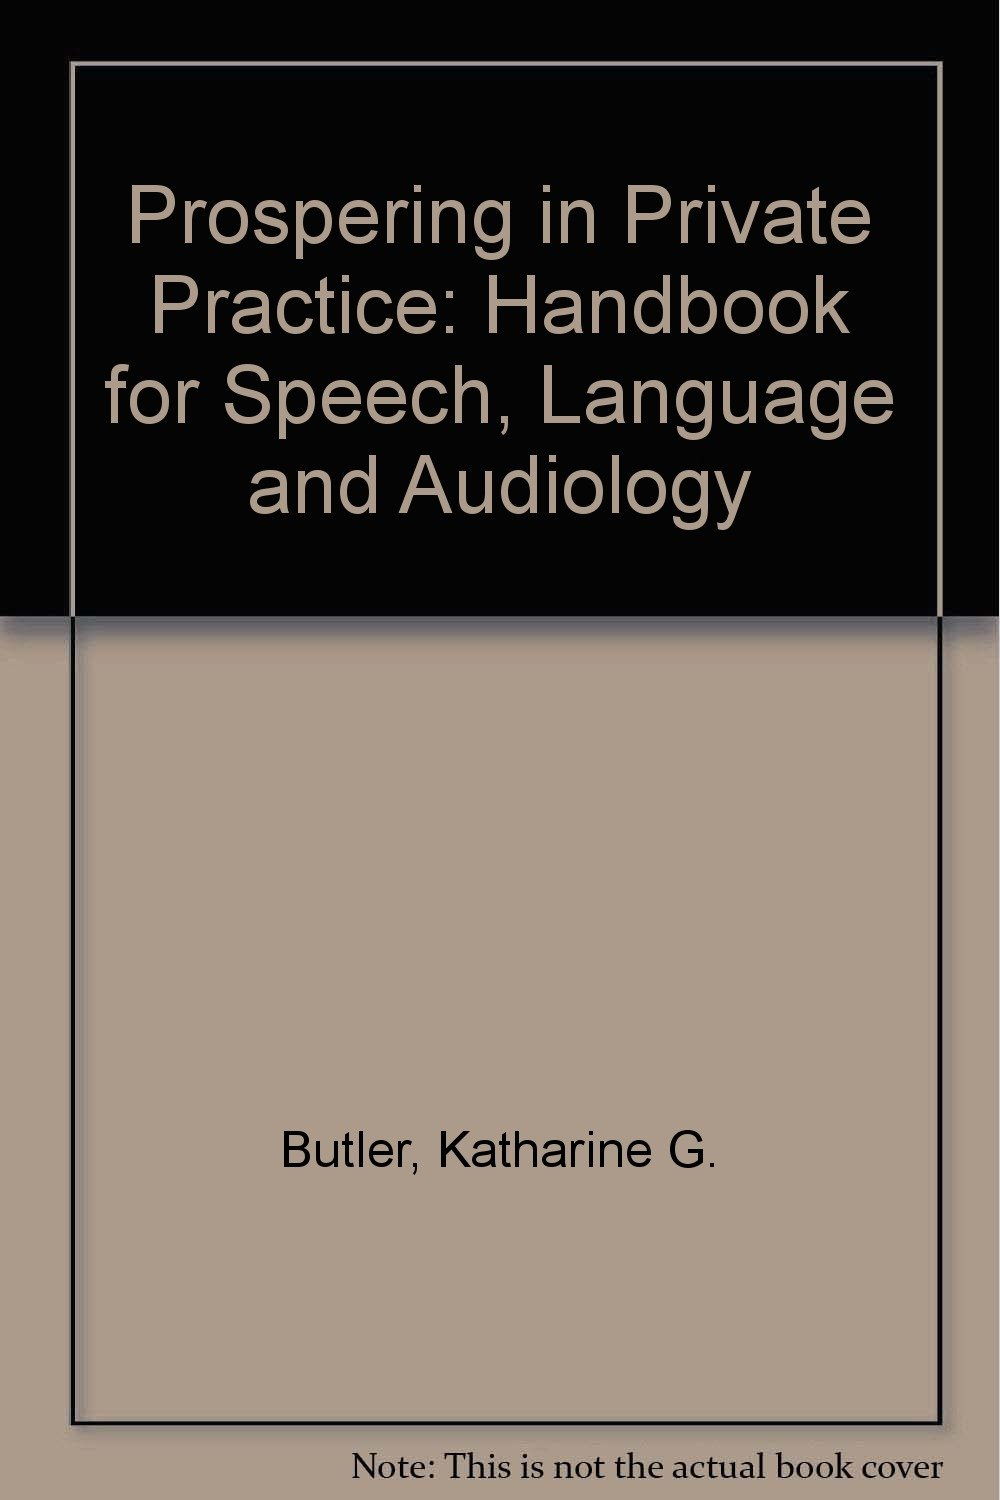 Prospering in Private Practice: A Handbook for Speech-Language Pathology and Audiology by Brand: Aspen Pub